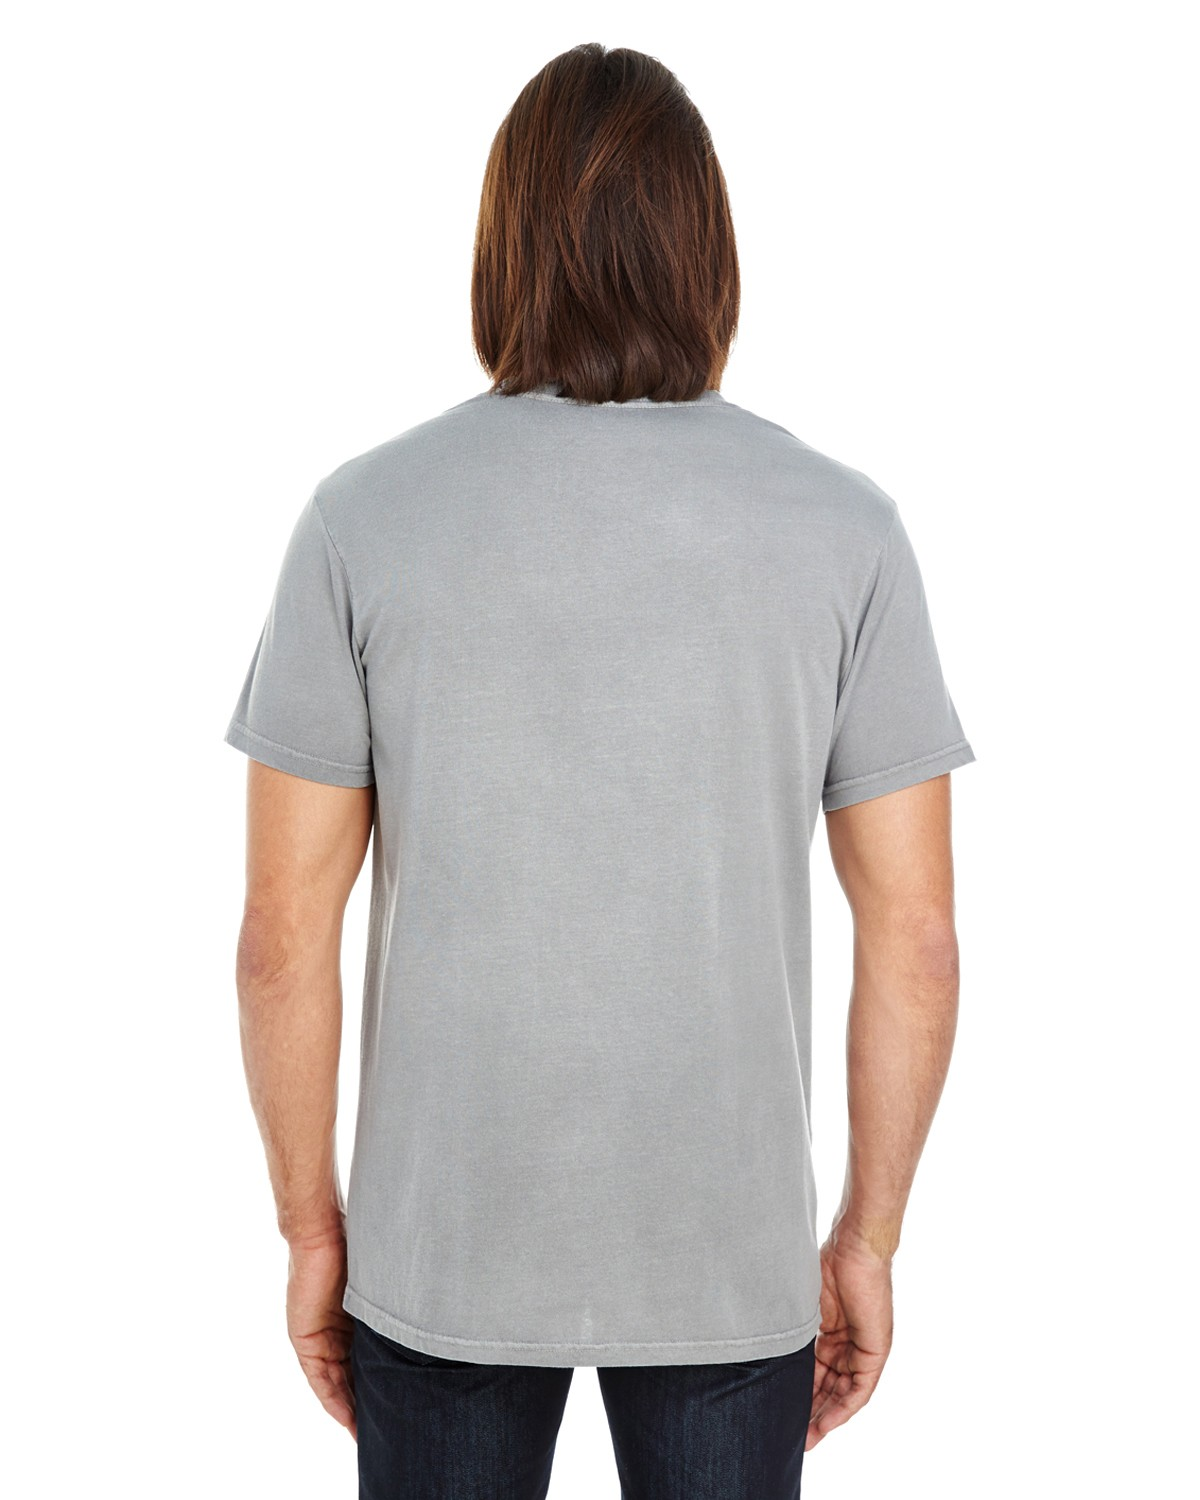 130A Threadfast Apparel GREY